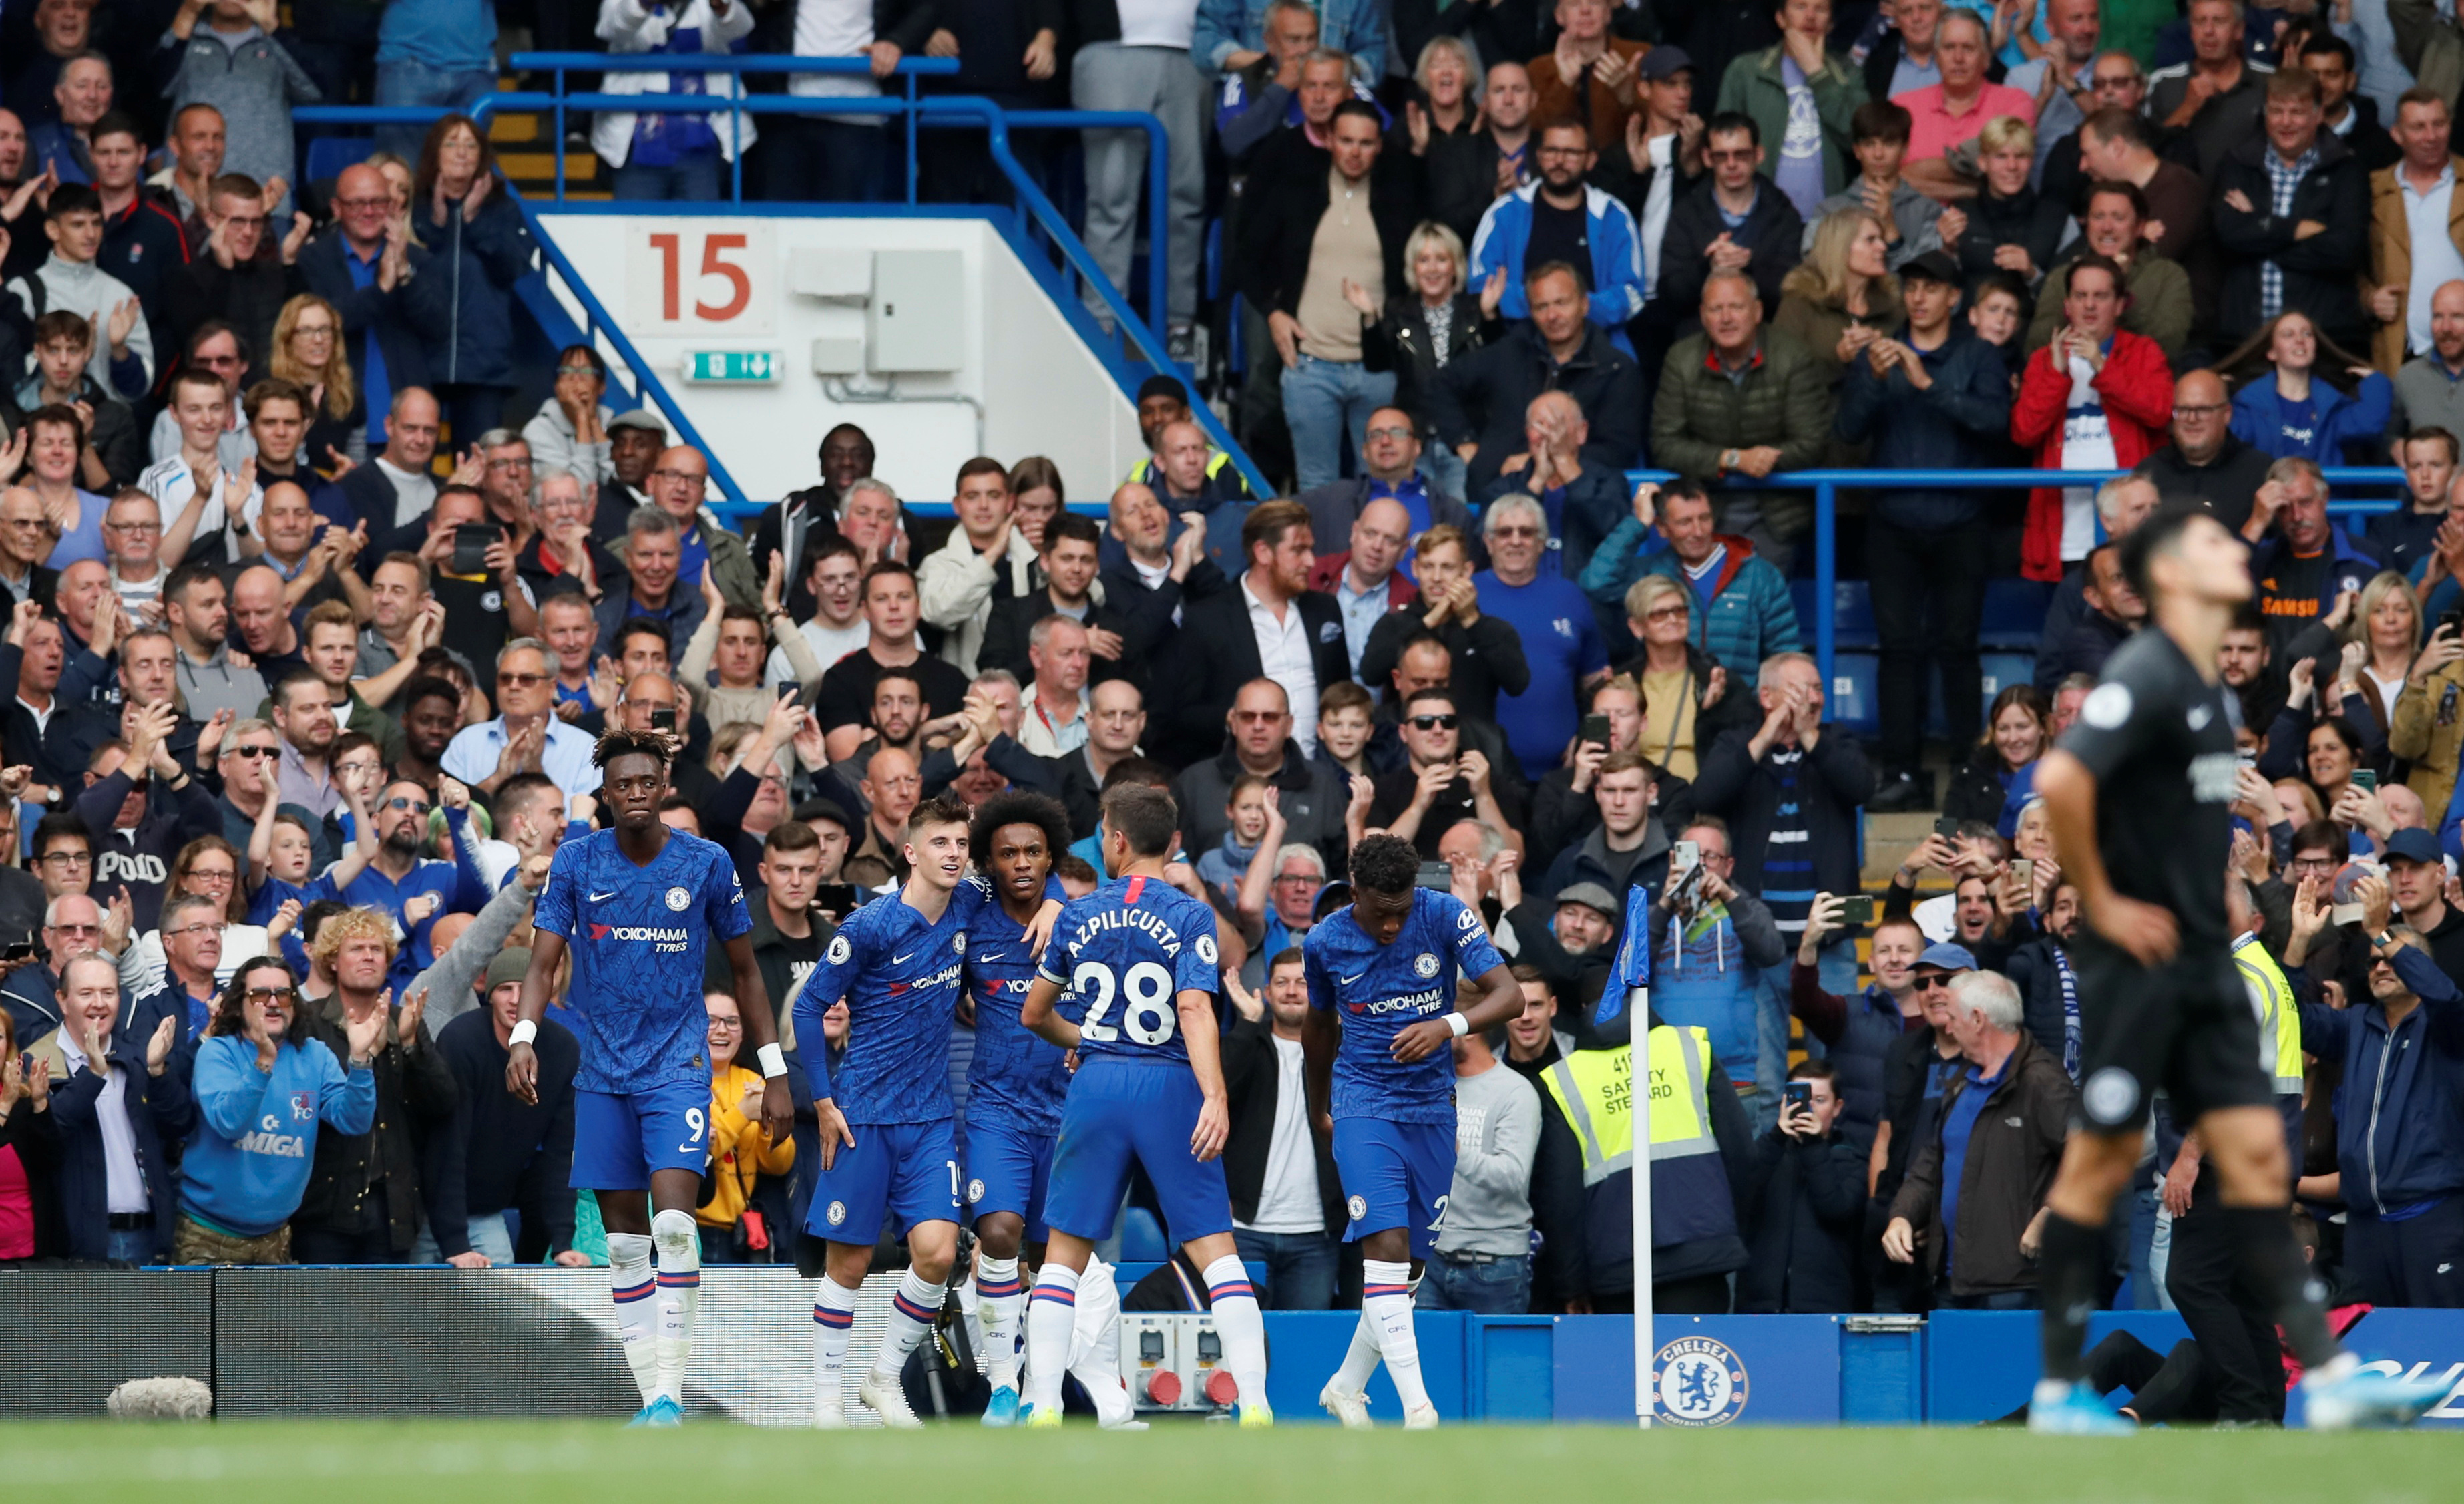 Chelsea fans reactions after Chelsea's first home win